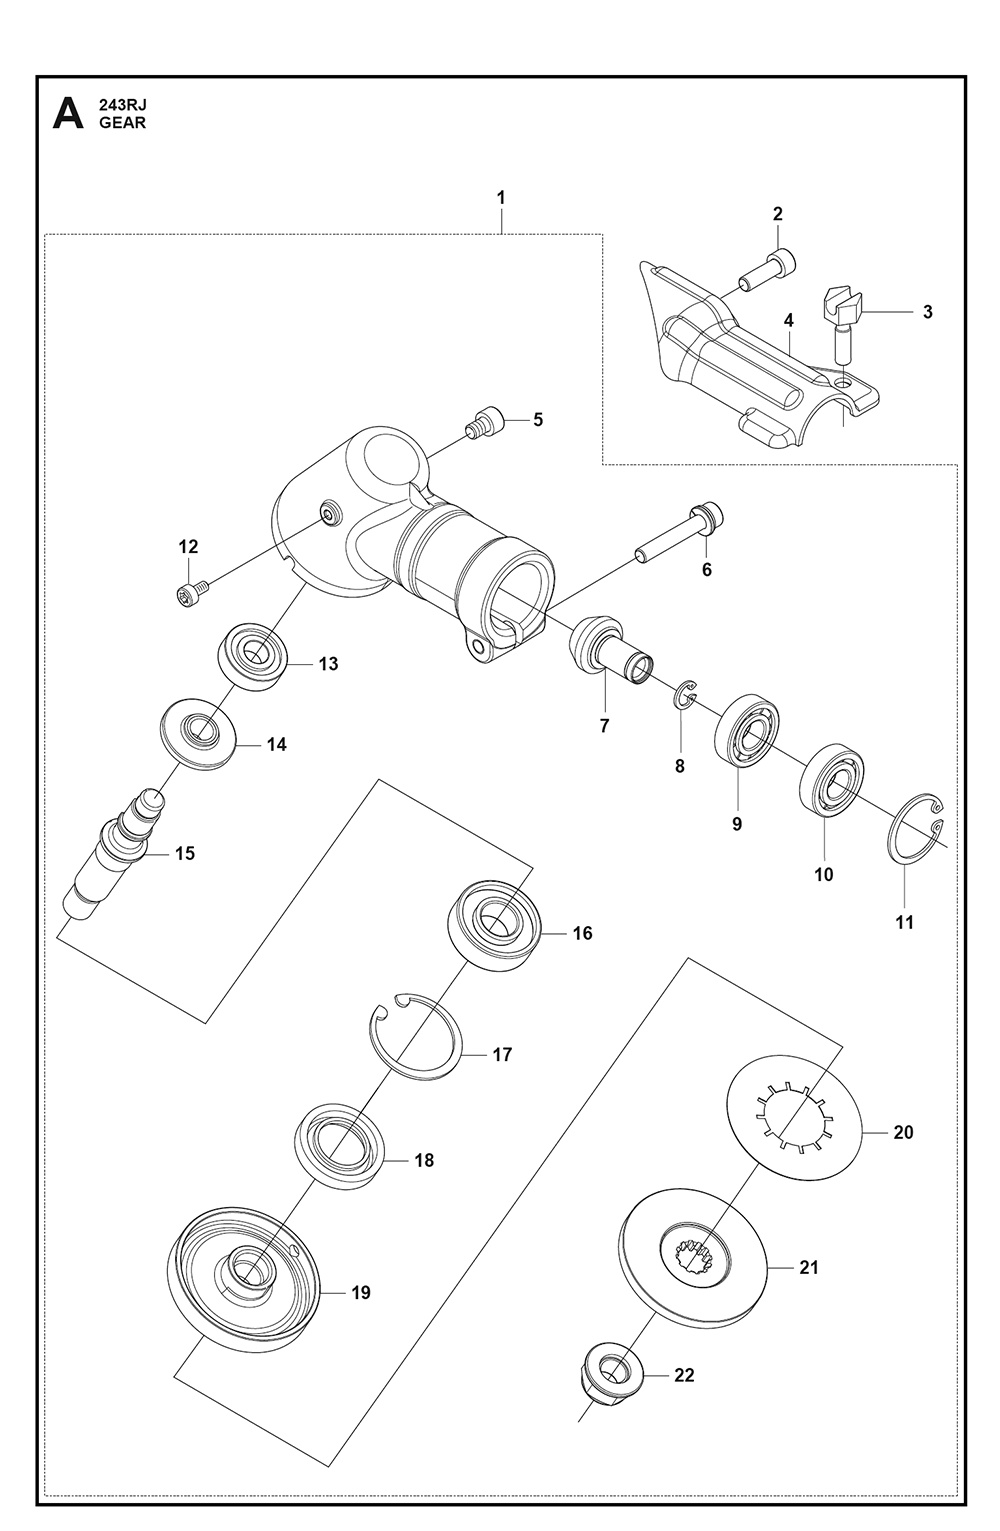 gm 4t65e valve diagram html